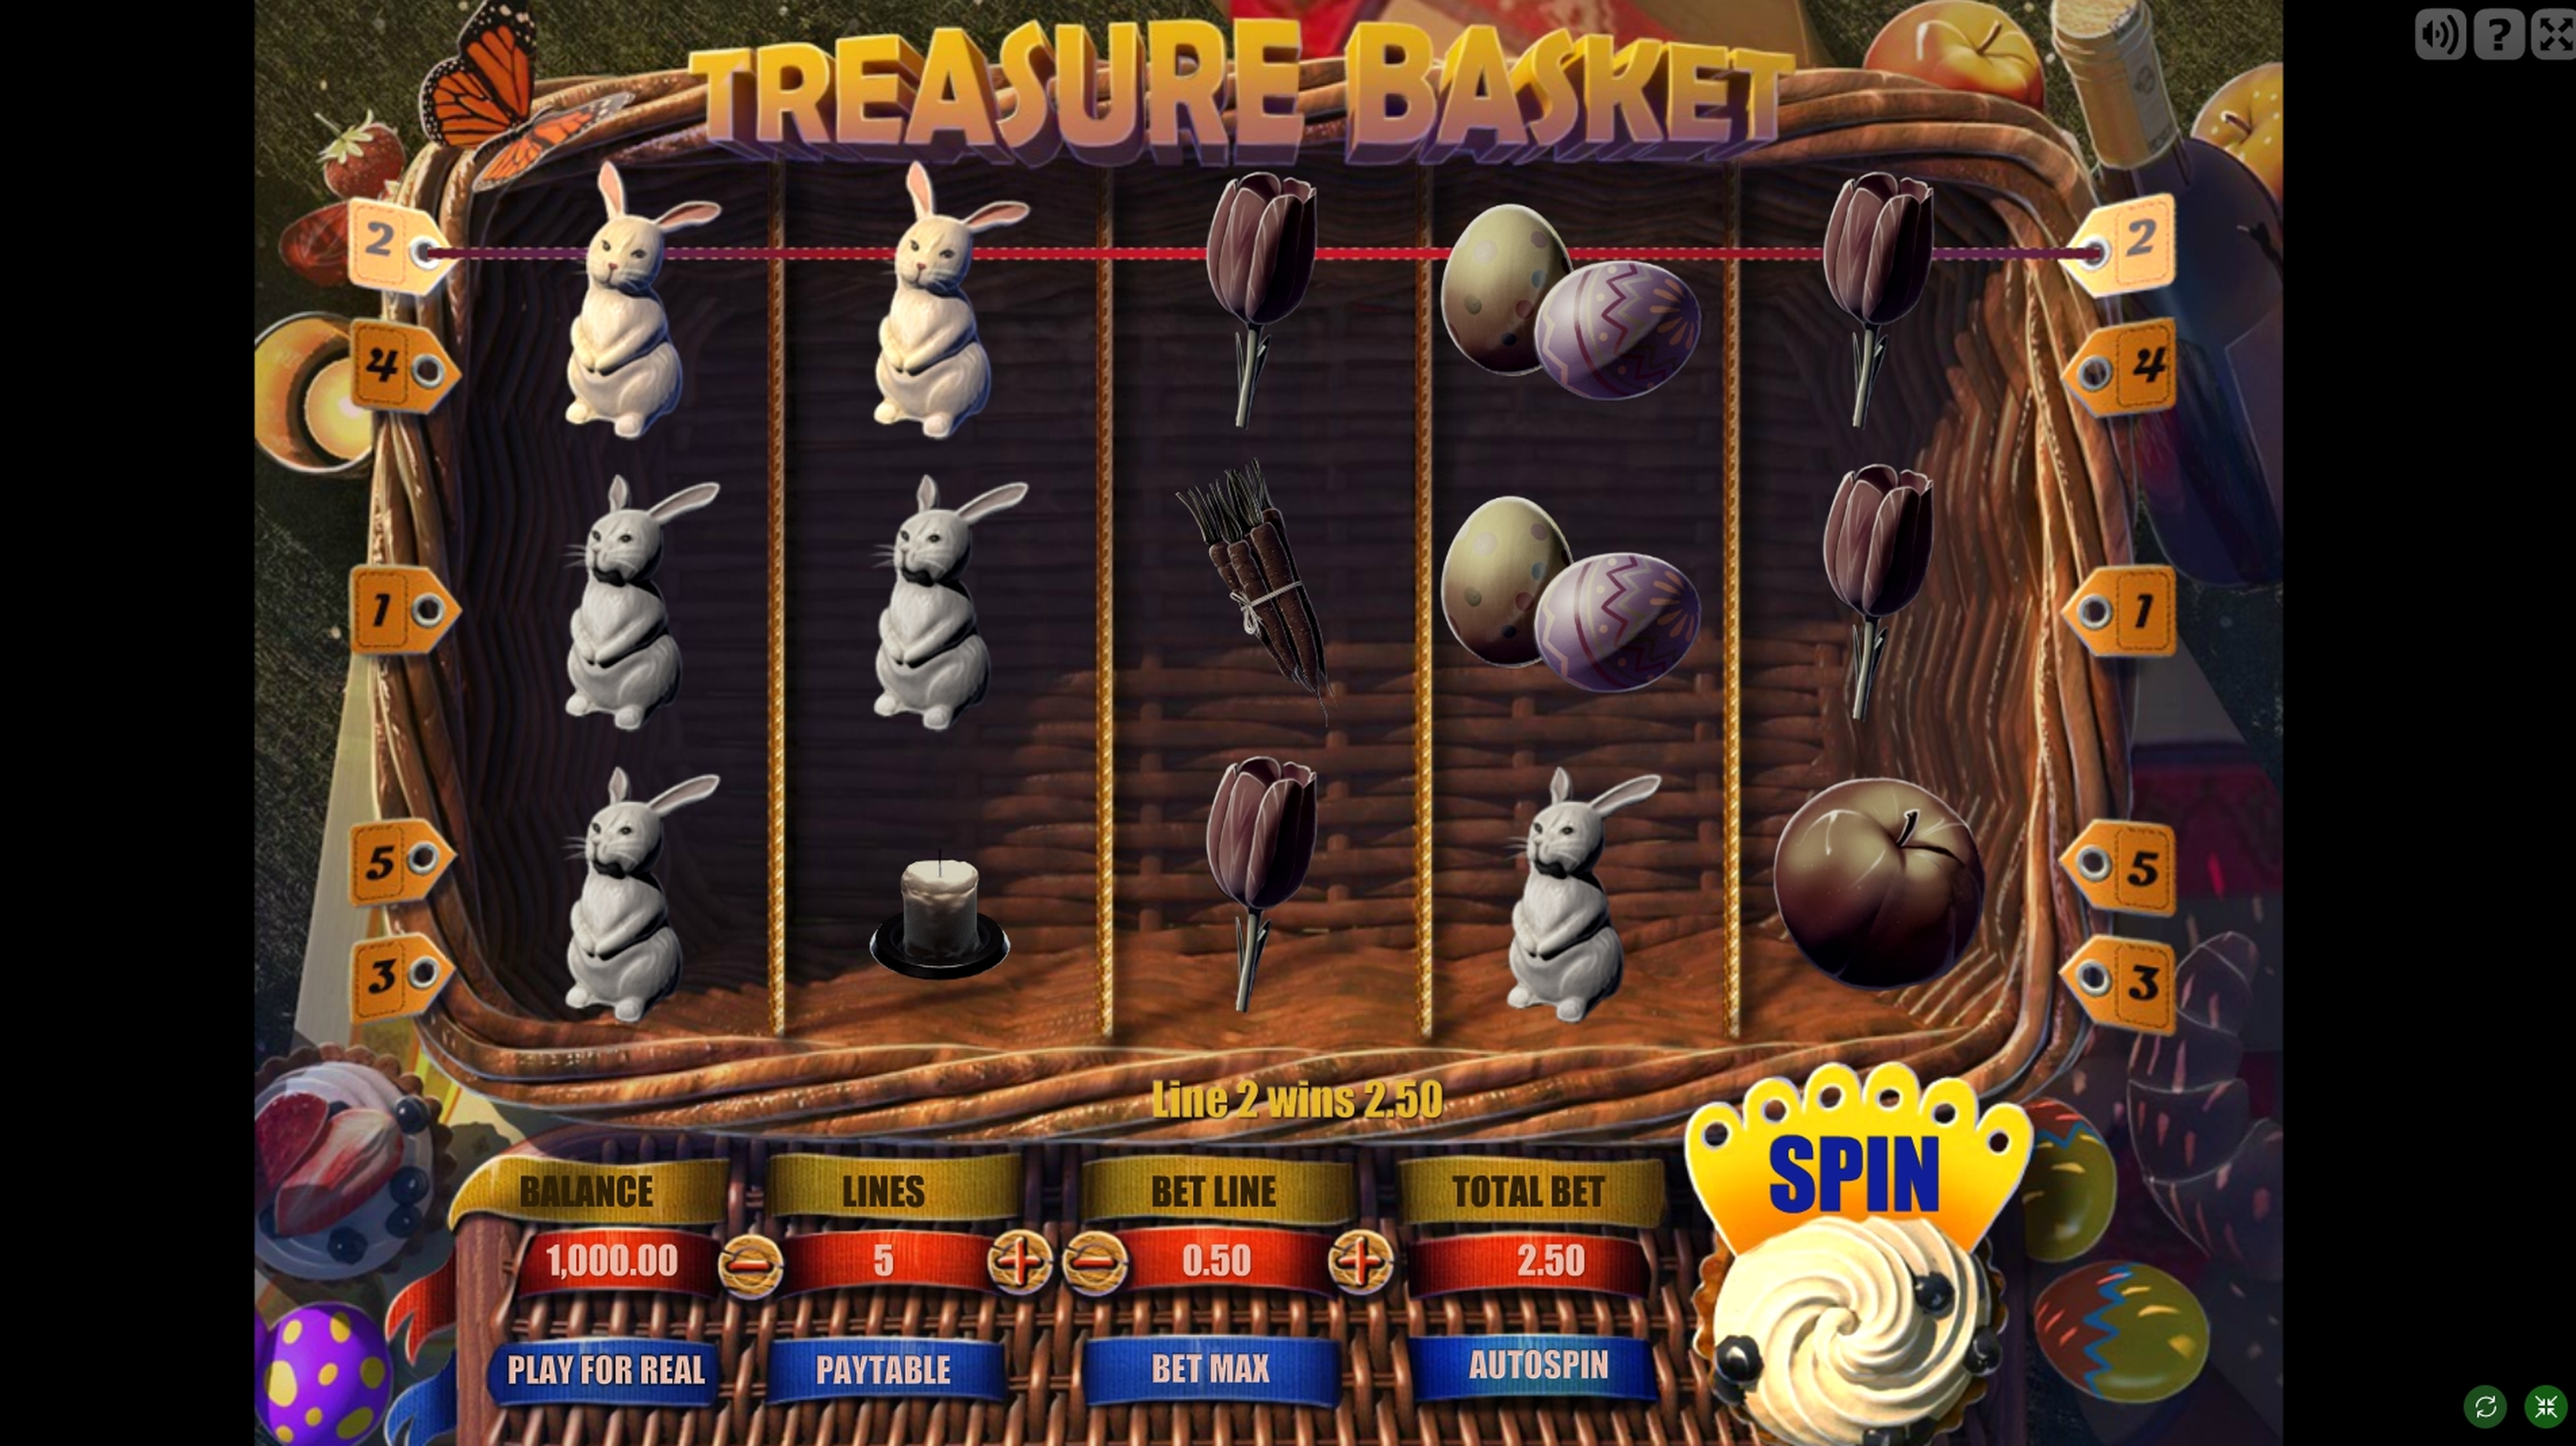 Win Money in Treasure Basket Free Slot Game by Gamescale Software